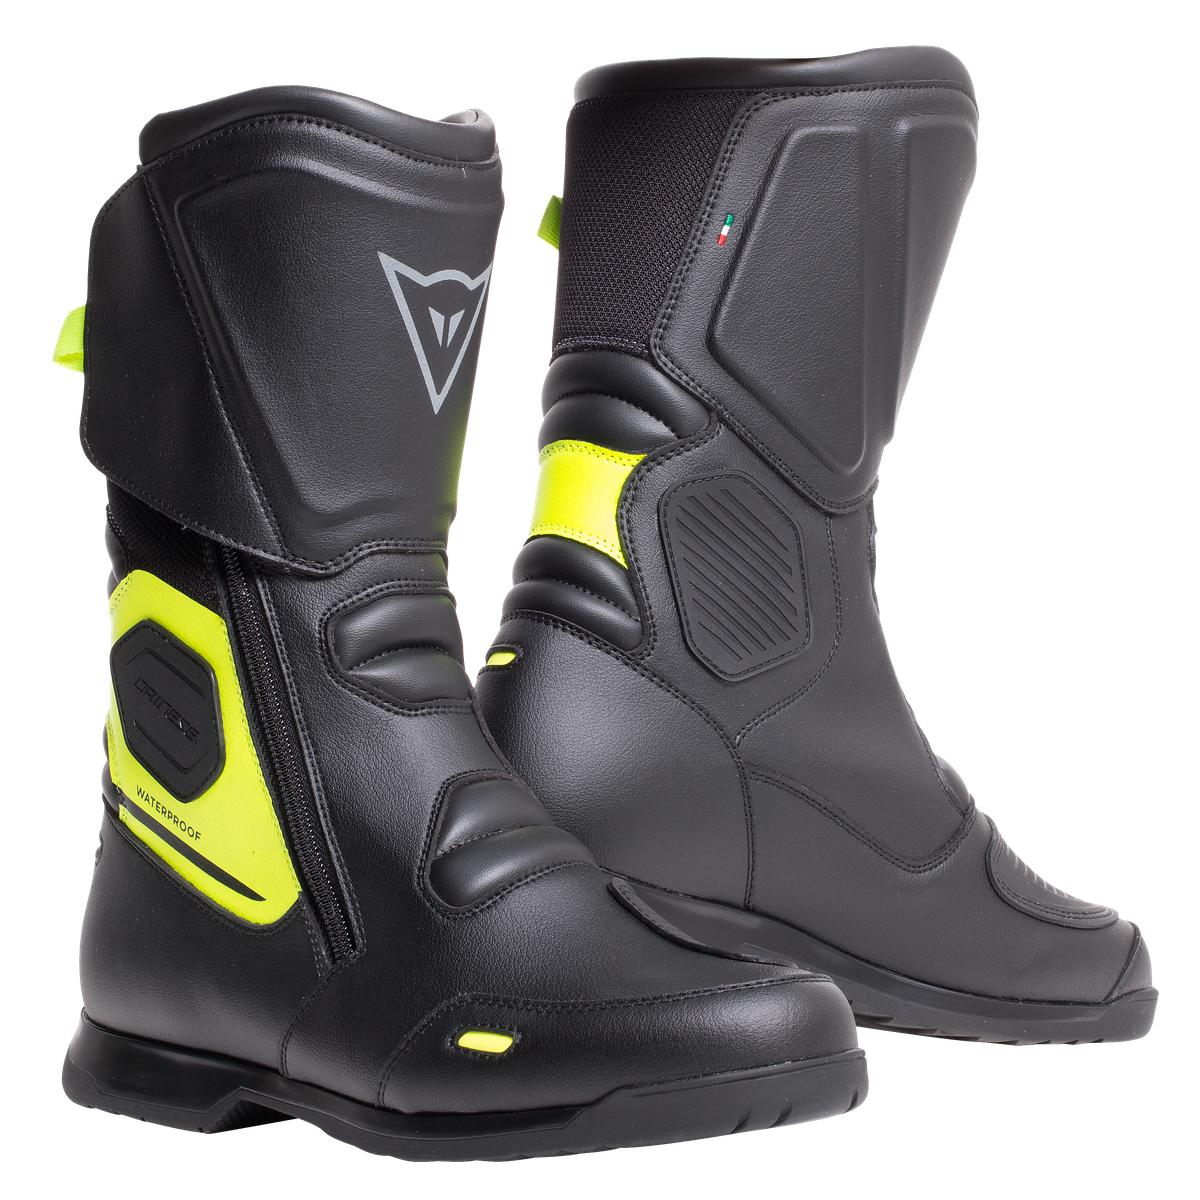 STIVALI MOTO SPORT TOURING IMPERMEABILI IN D-WP Dainese X-TOURER BLACK/YELLOW